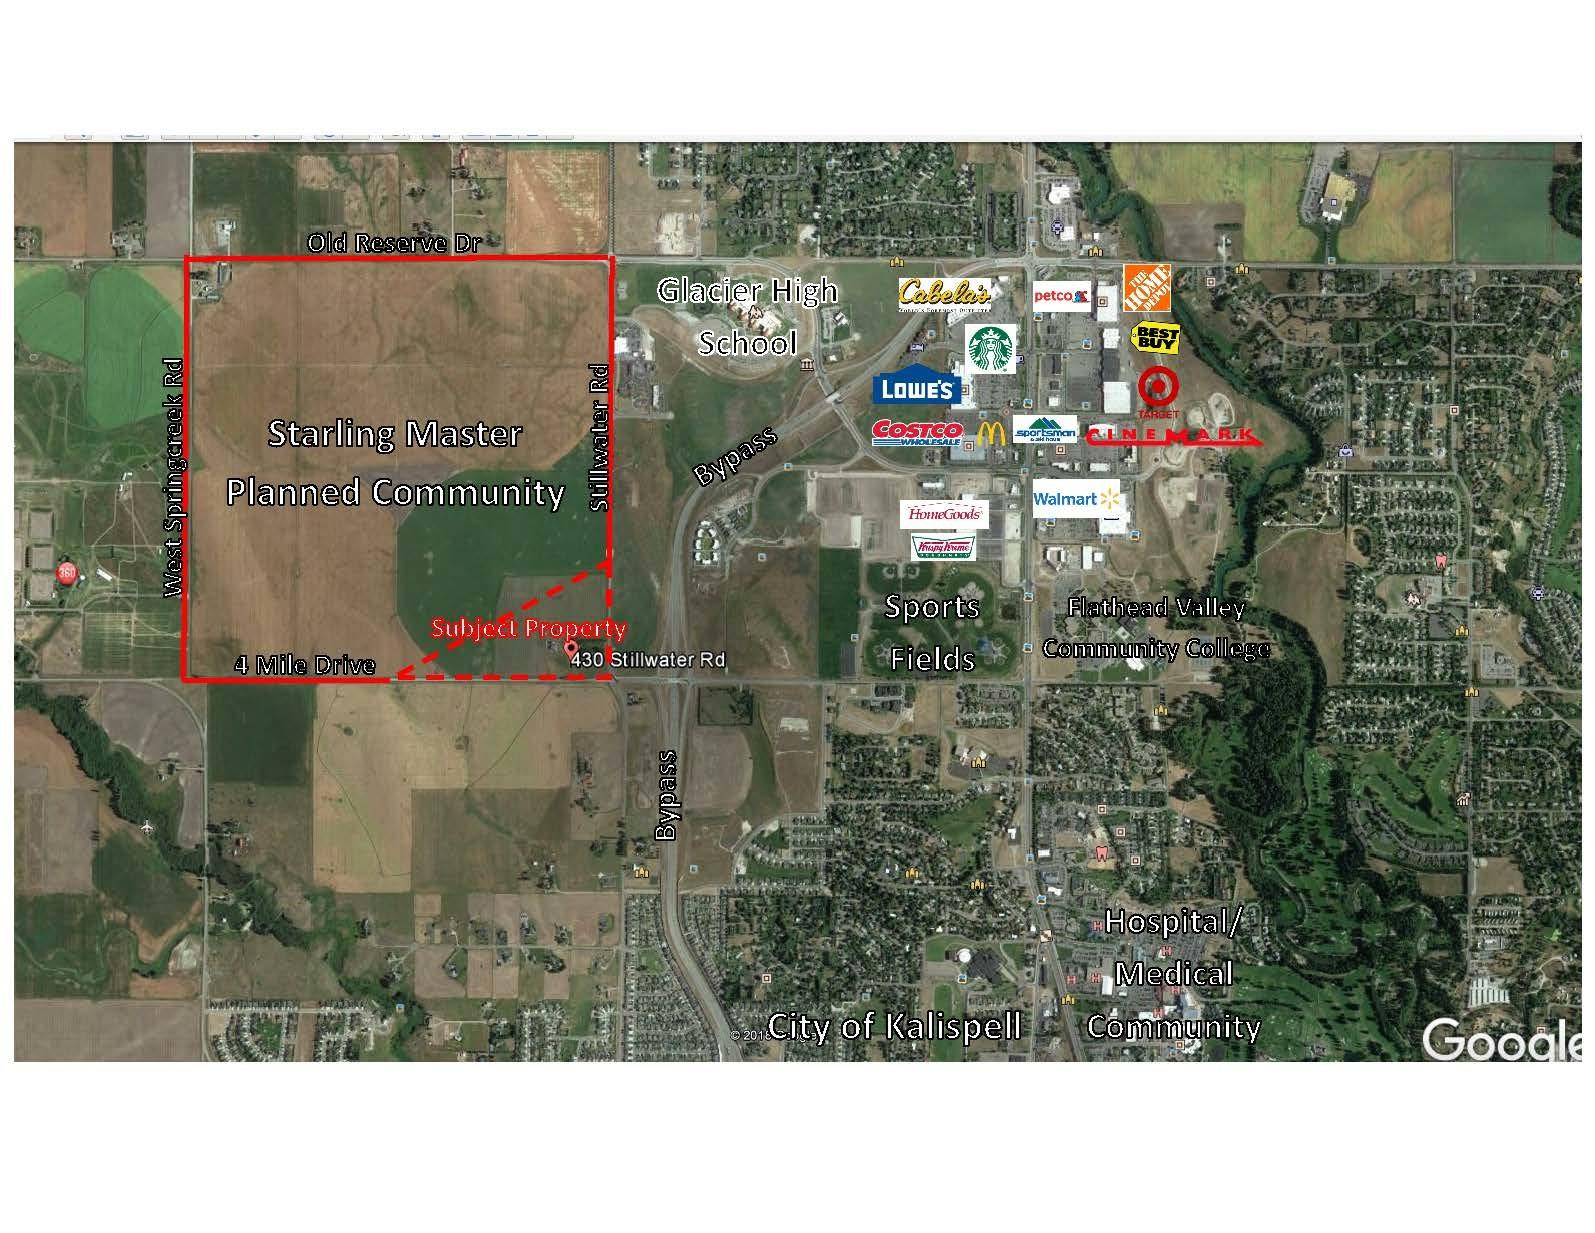 Land for Sale at 430 Stillwater Road in Kalispell, Montana